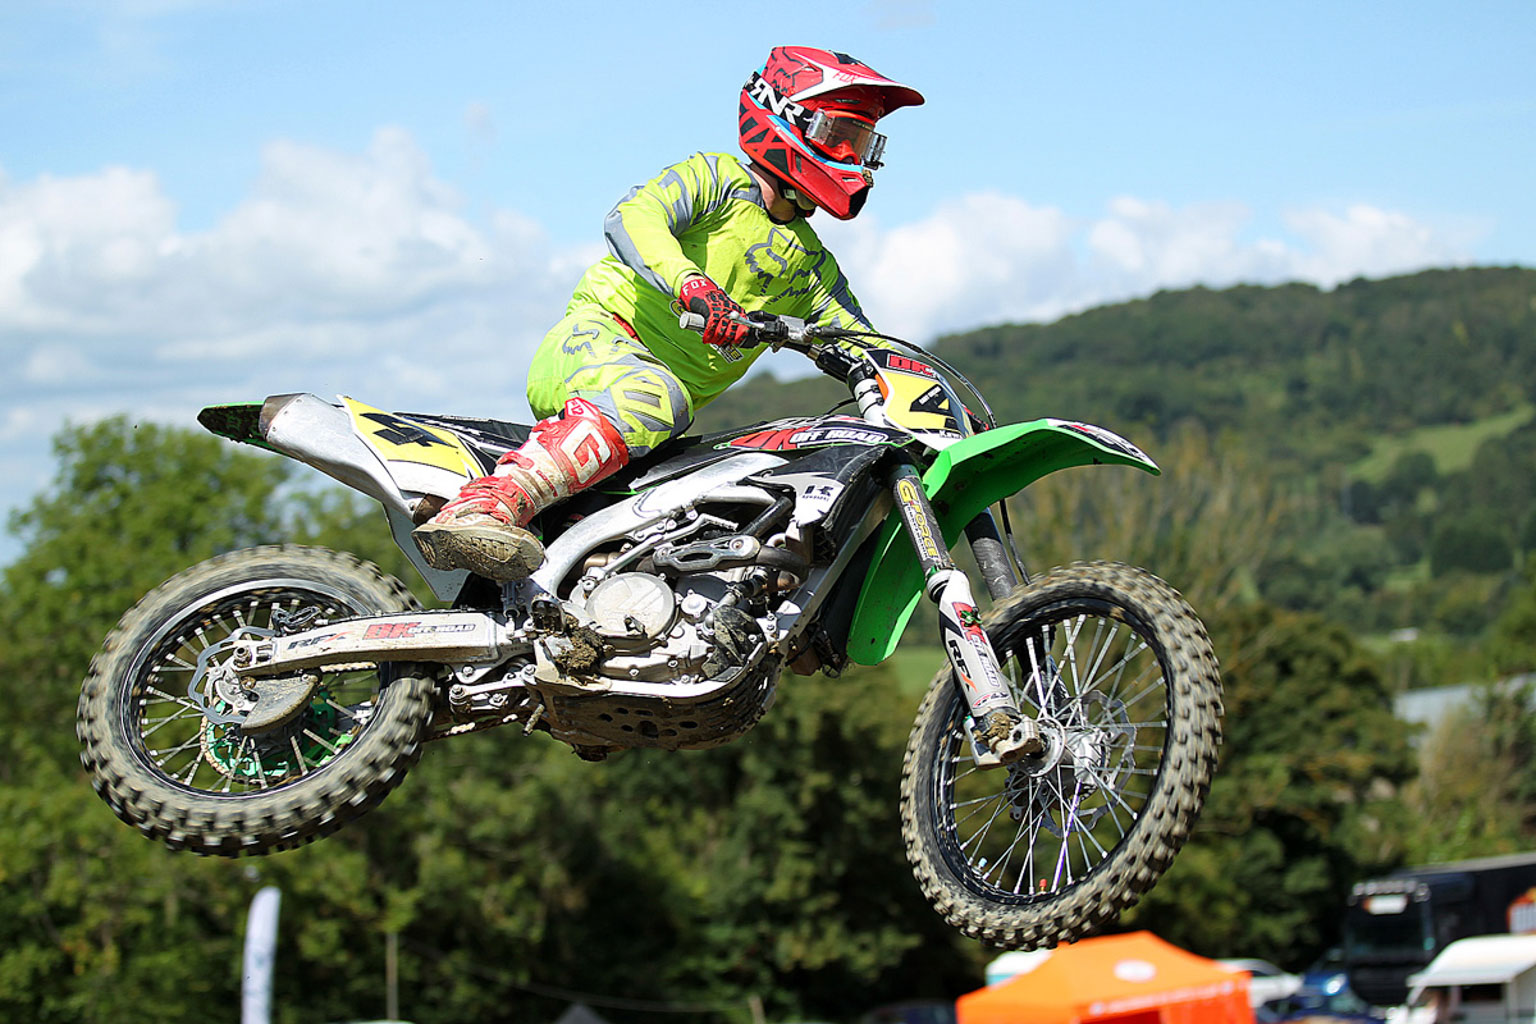 Gary Gibson, 4th in MX1